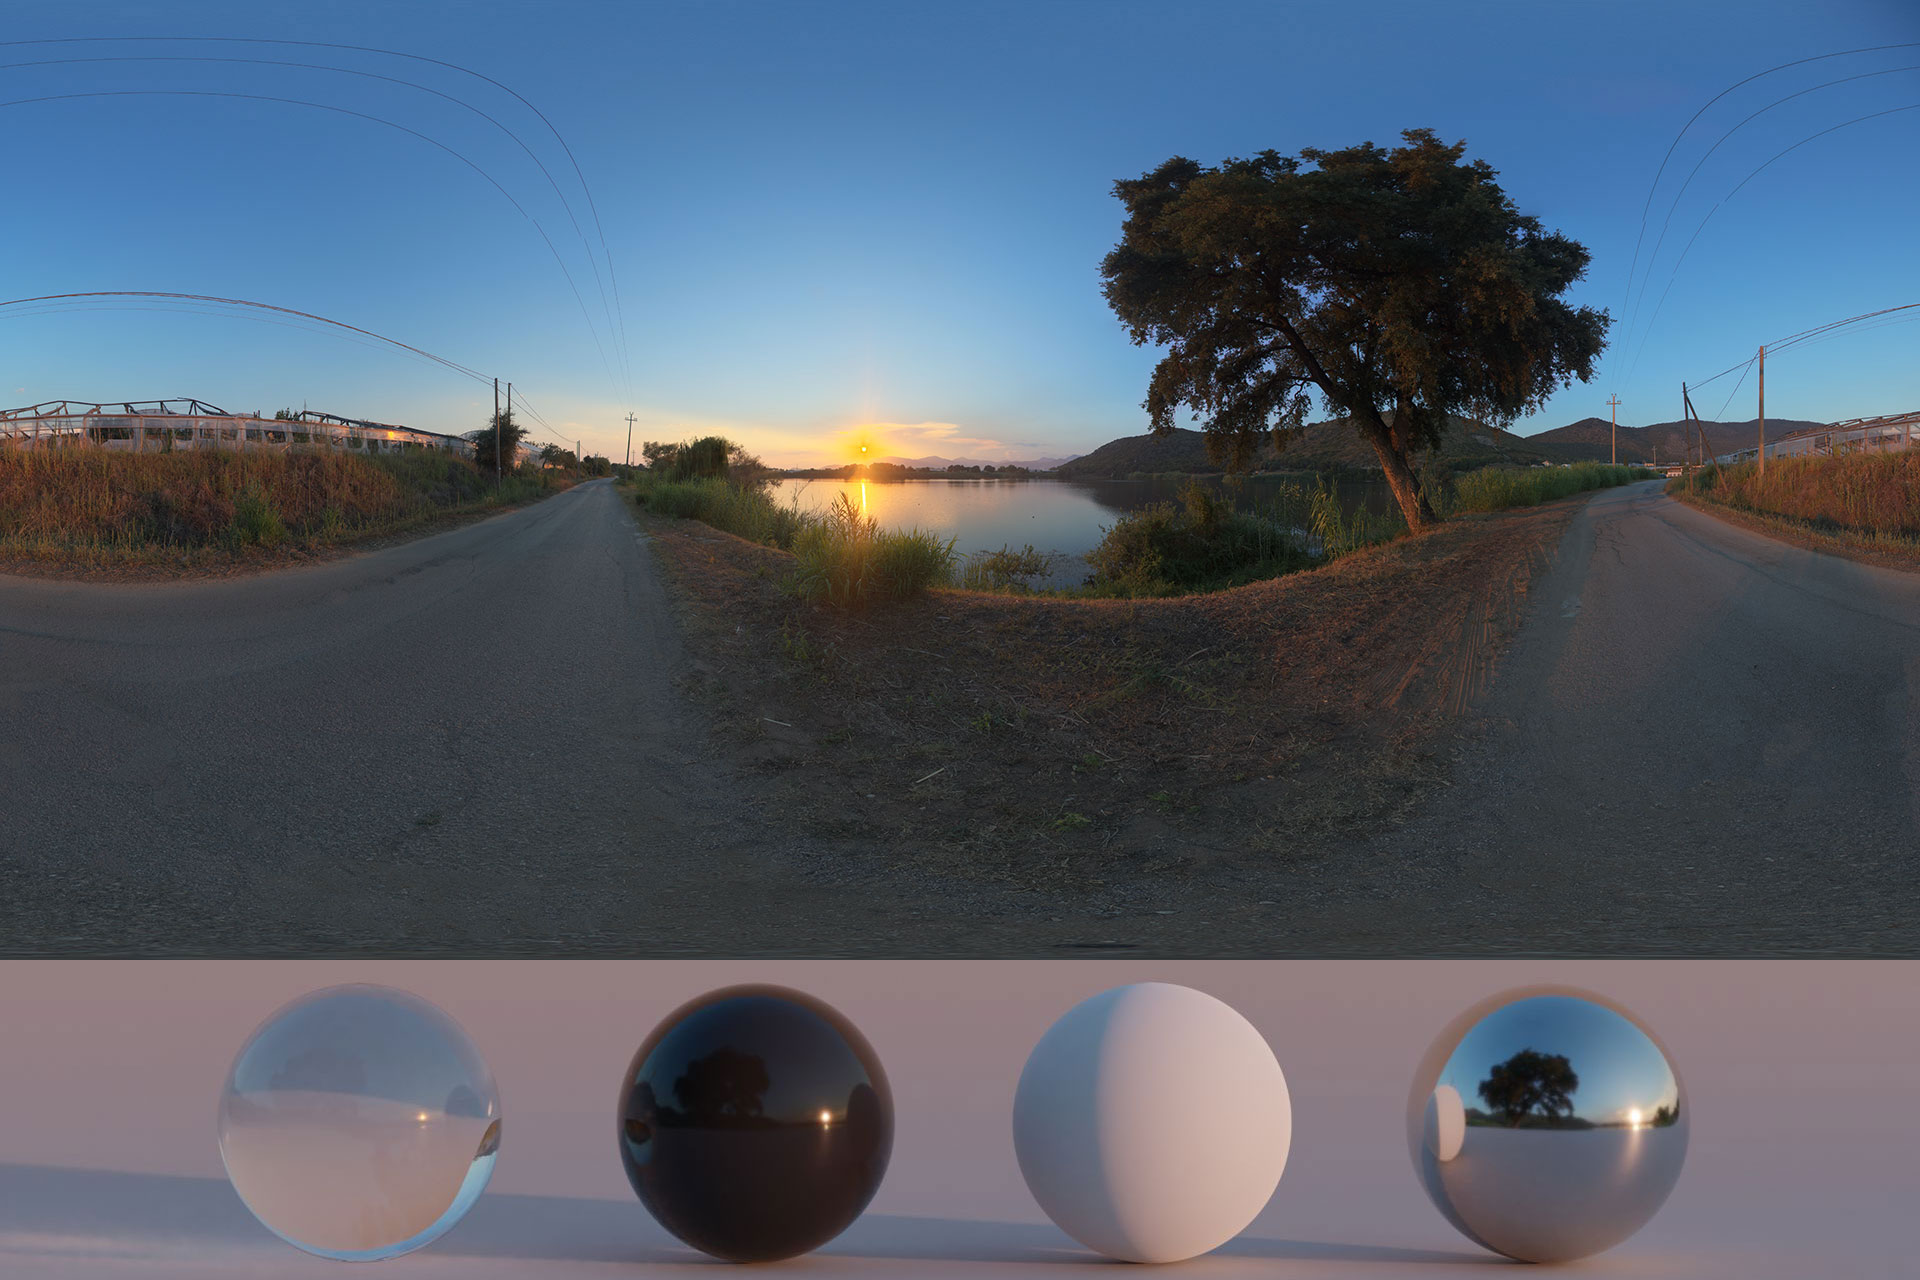 HDRis Unclipped